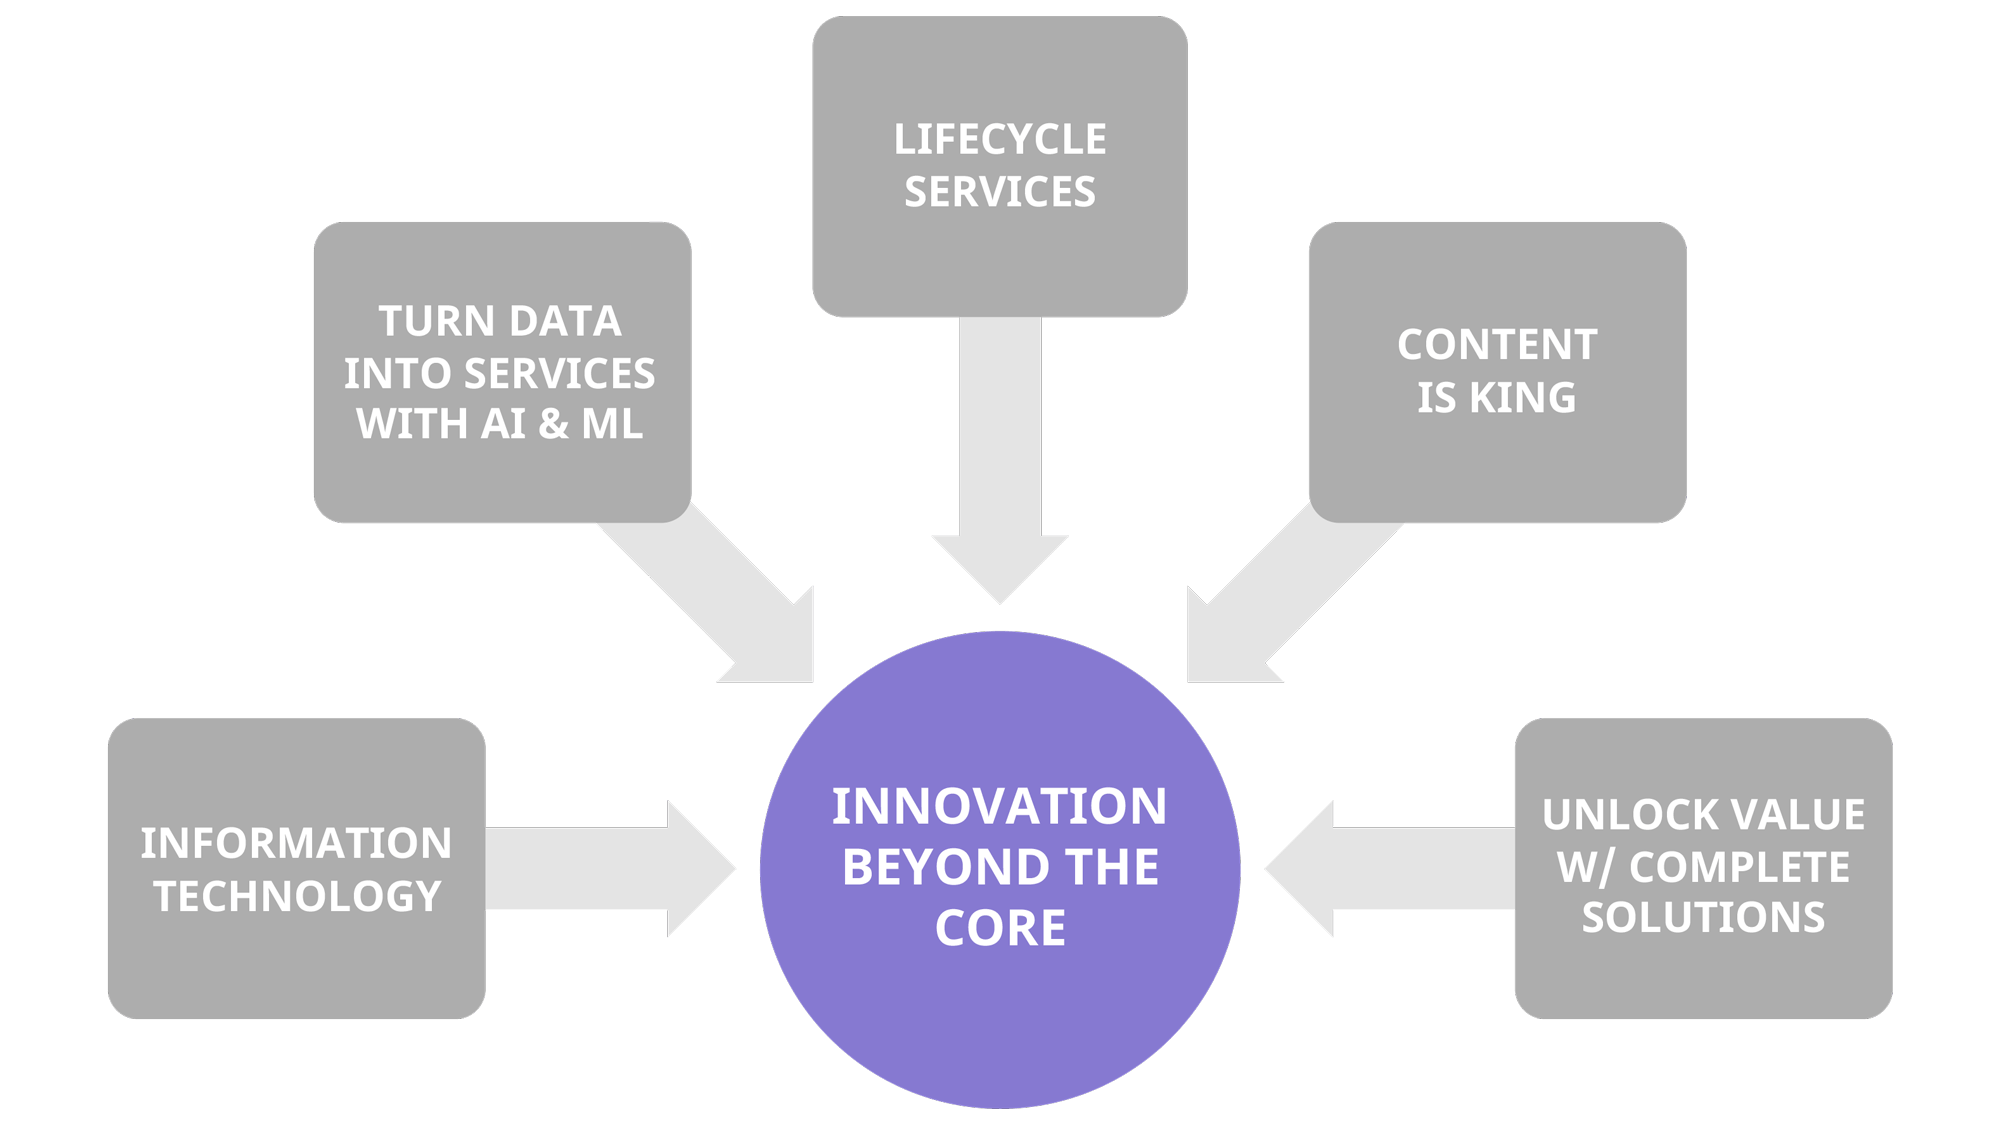 Five Methods for innovation beyond the core